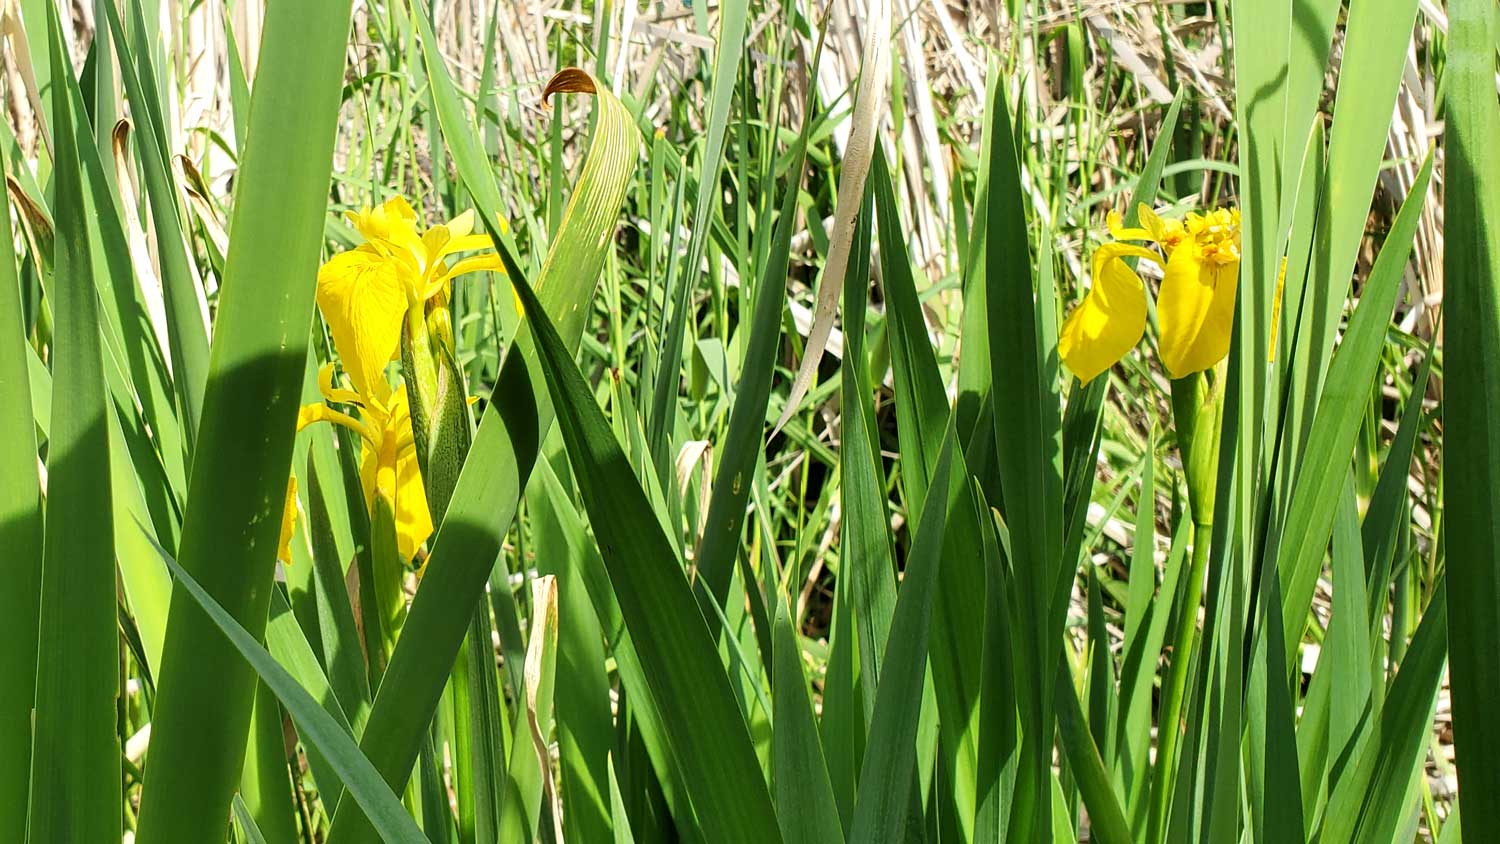 Pair of yellow flowers showing against green blades at Veteran Acres Park.